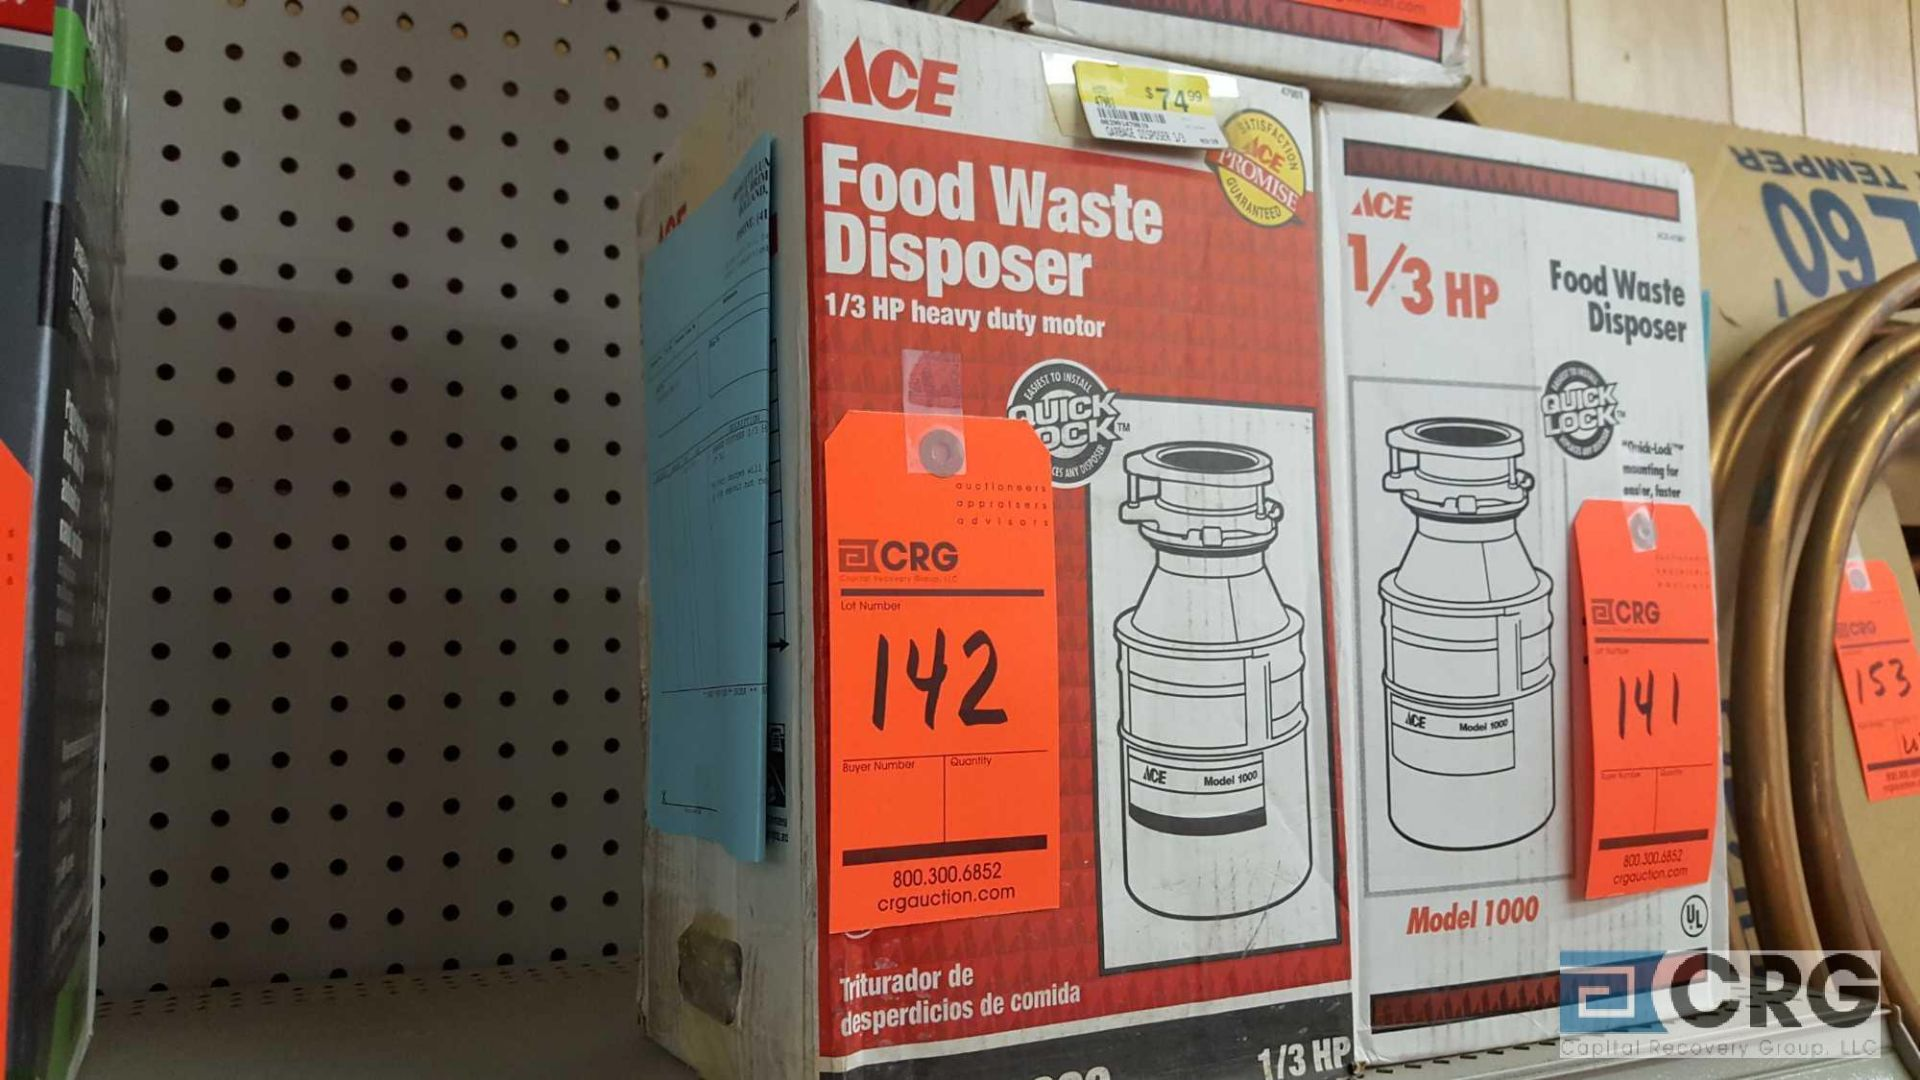 Lot 142 - Ace 1000 food waste disposer, NEW